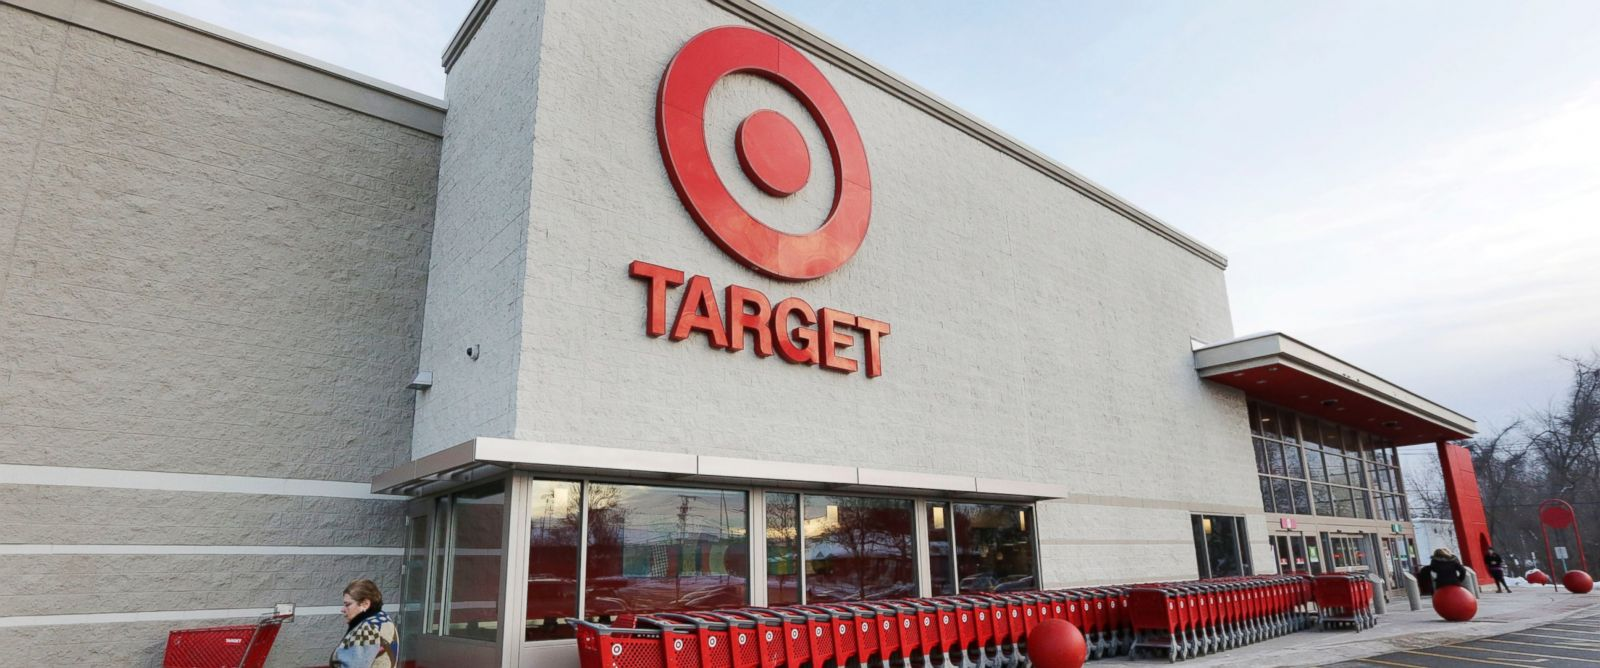 PHOTO: A Target retail store in seen in Watertown, Mass, Dec. 19, 2013.